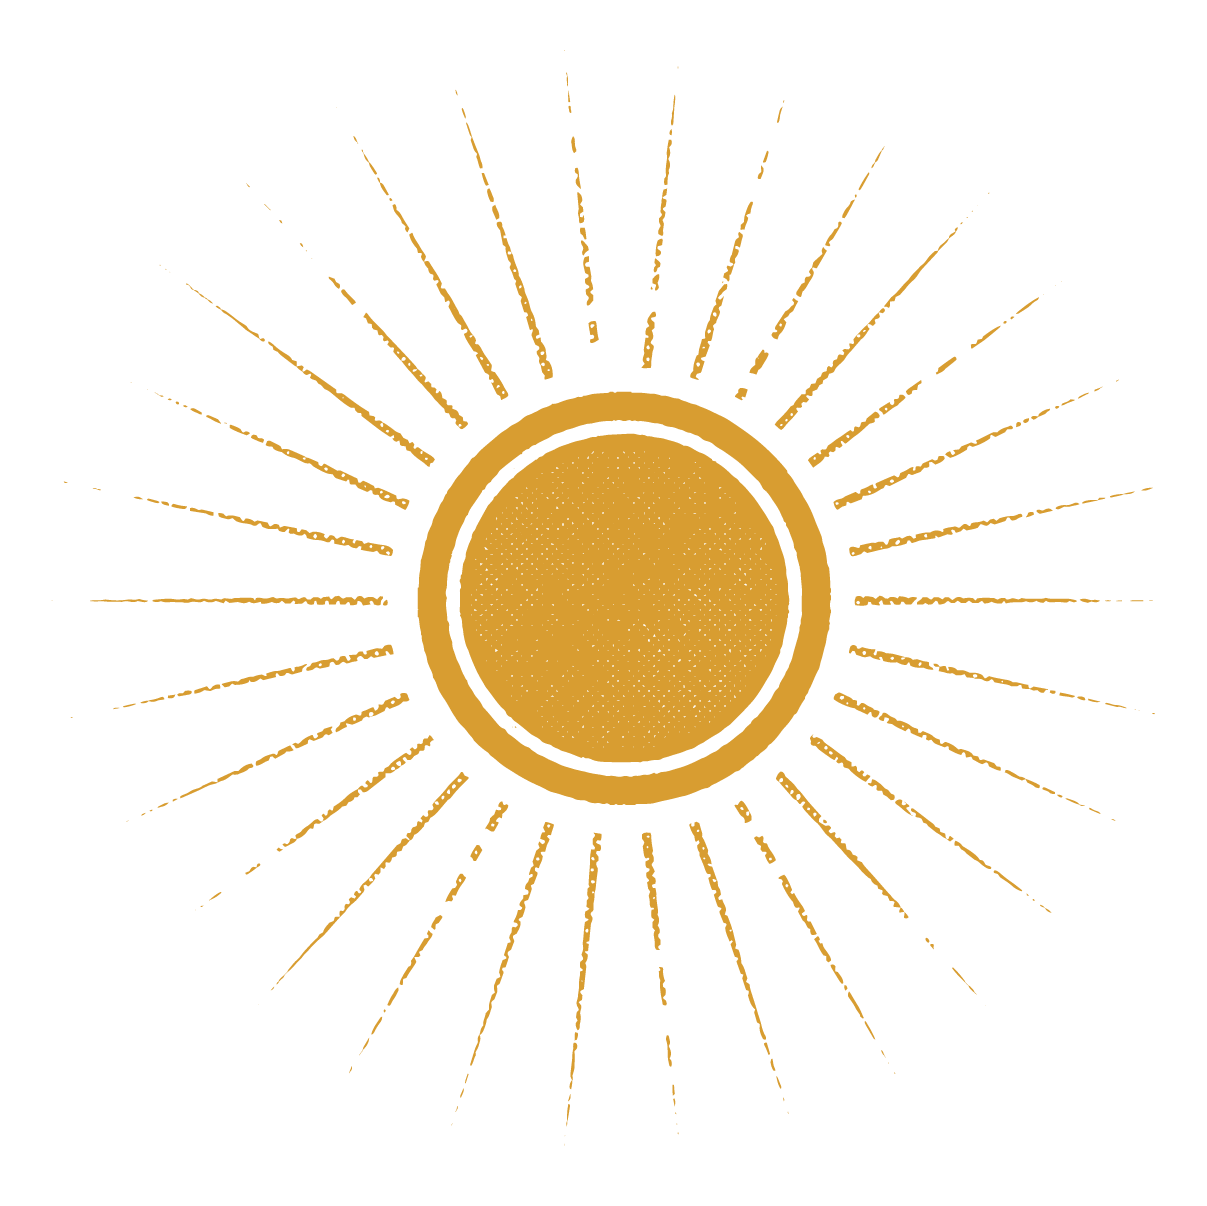 sunrays logo-16.png